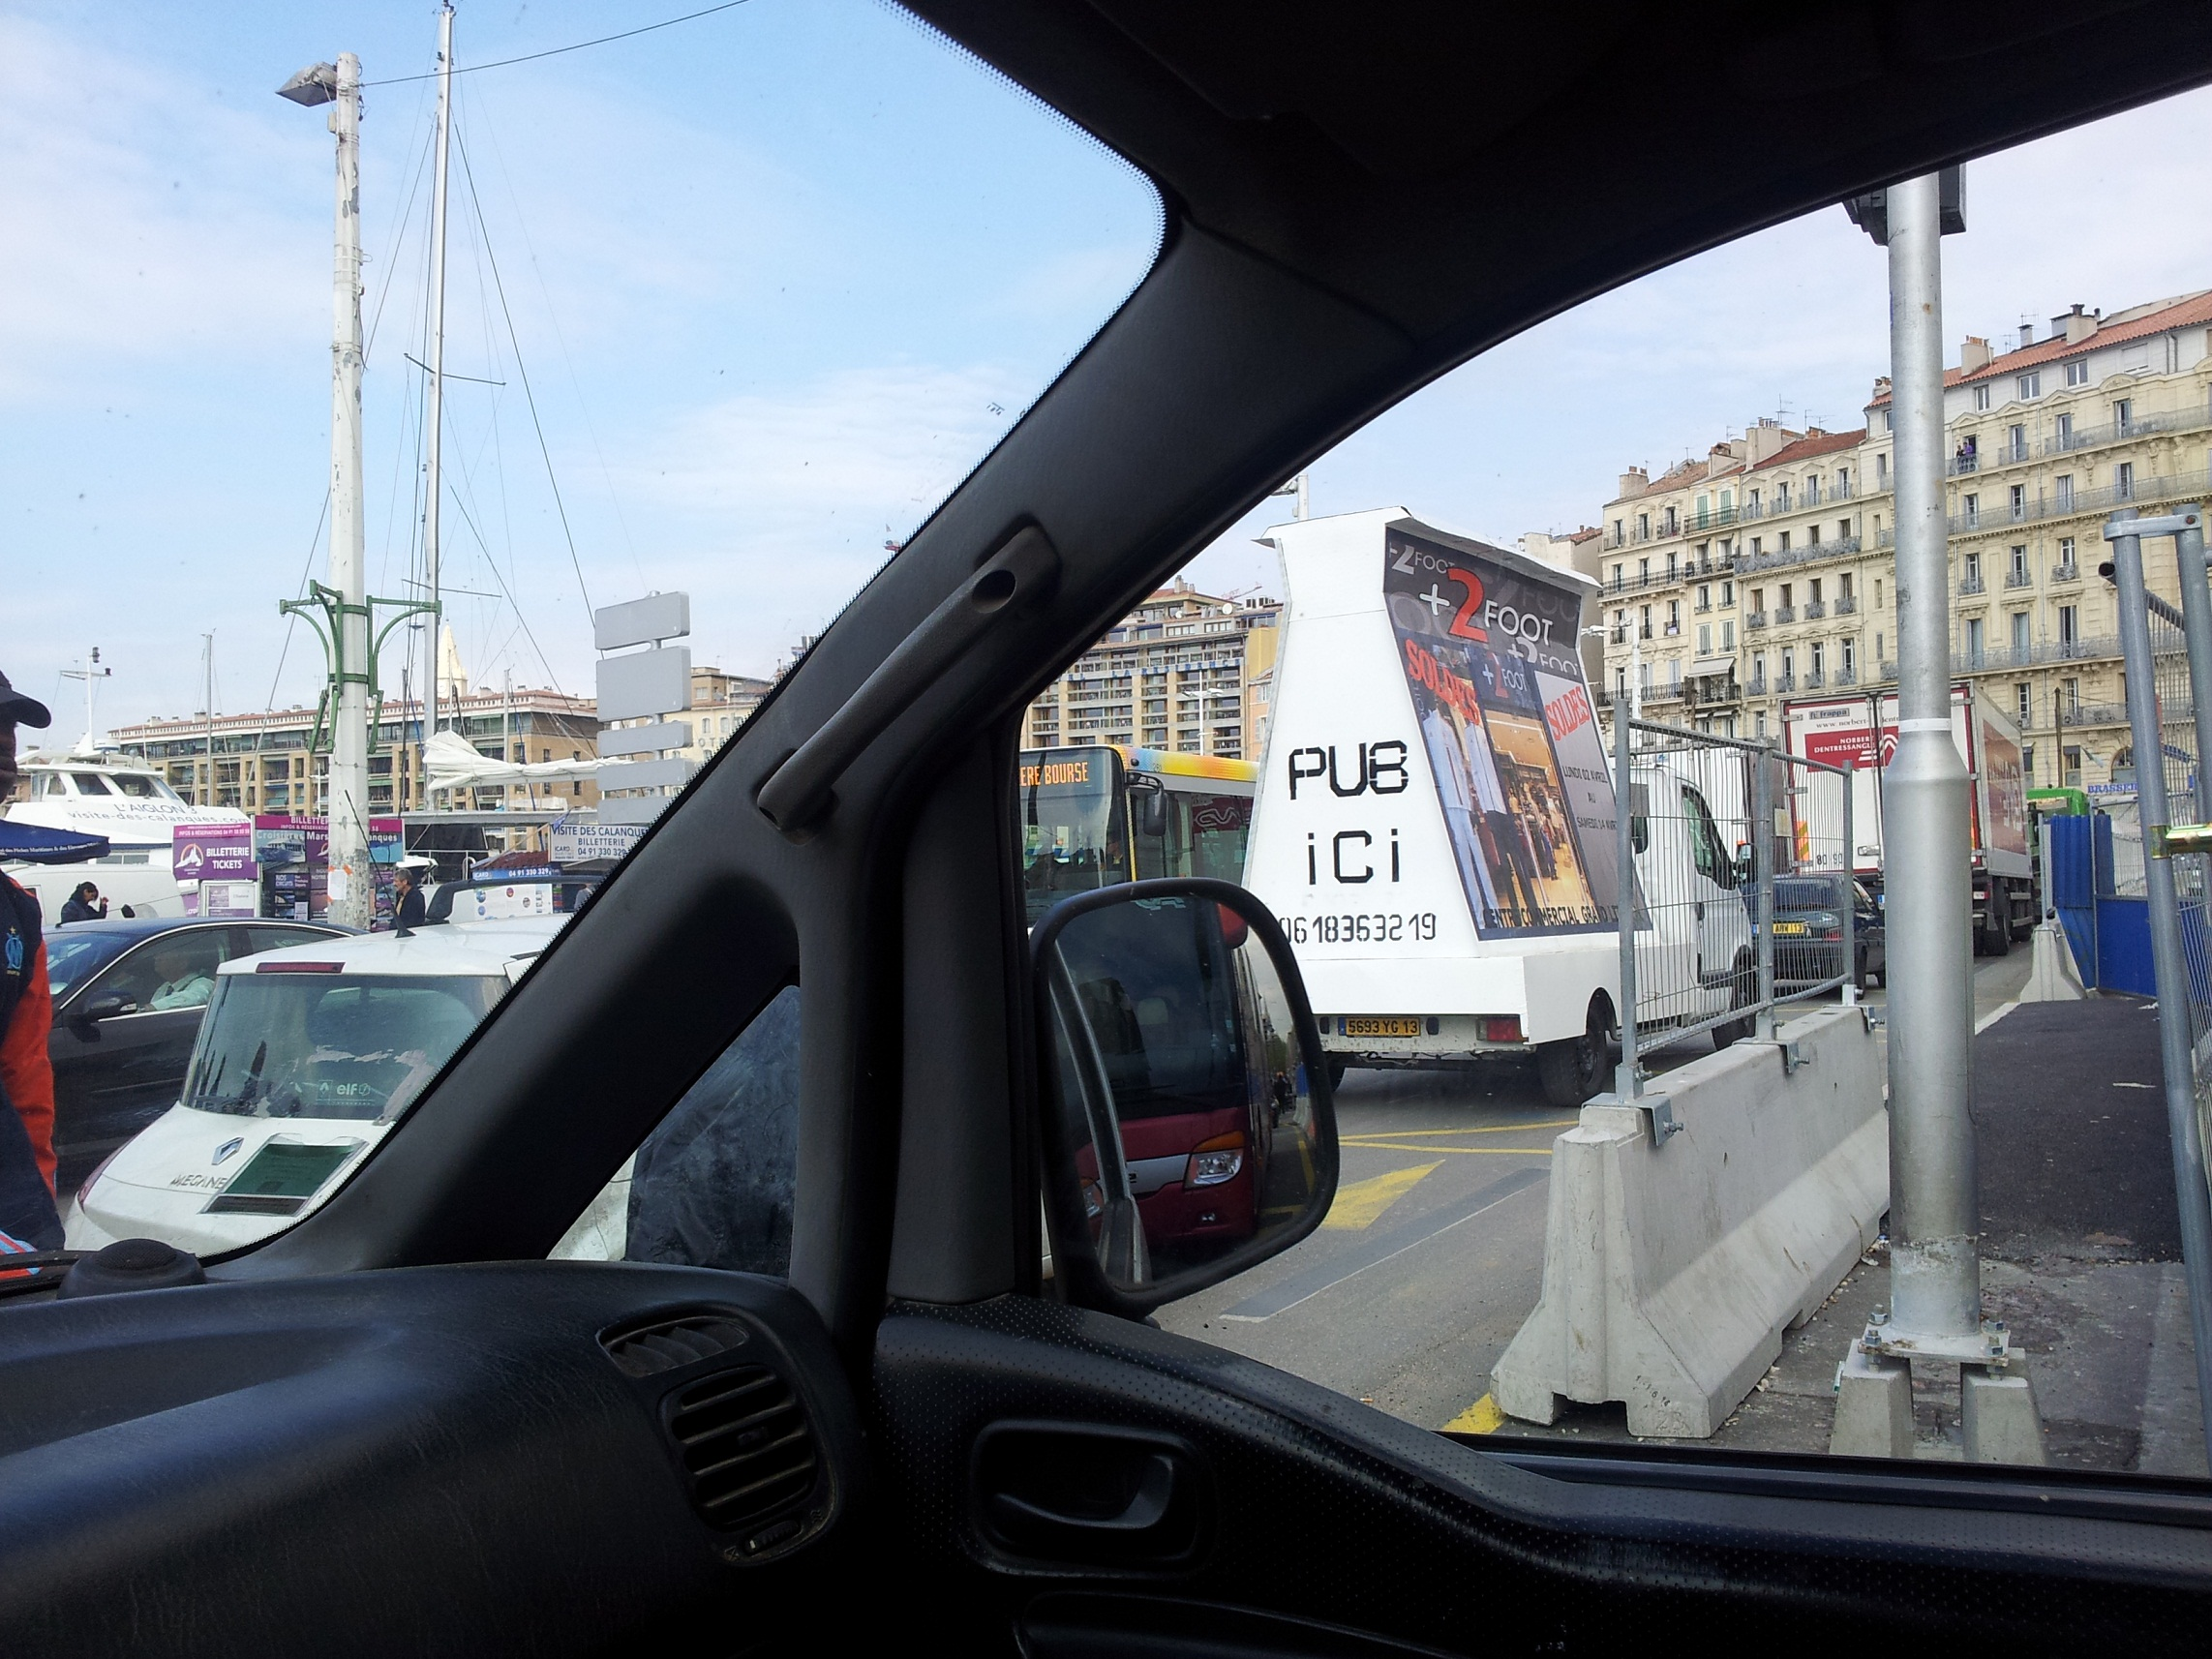 affichage mobile cannes camion publicitaire marseille street marketing. Black Bedroom Furniture Sets. Home Design Ideas